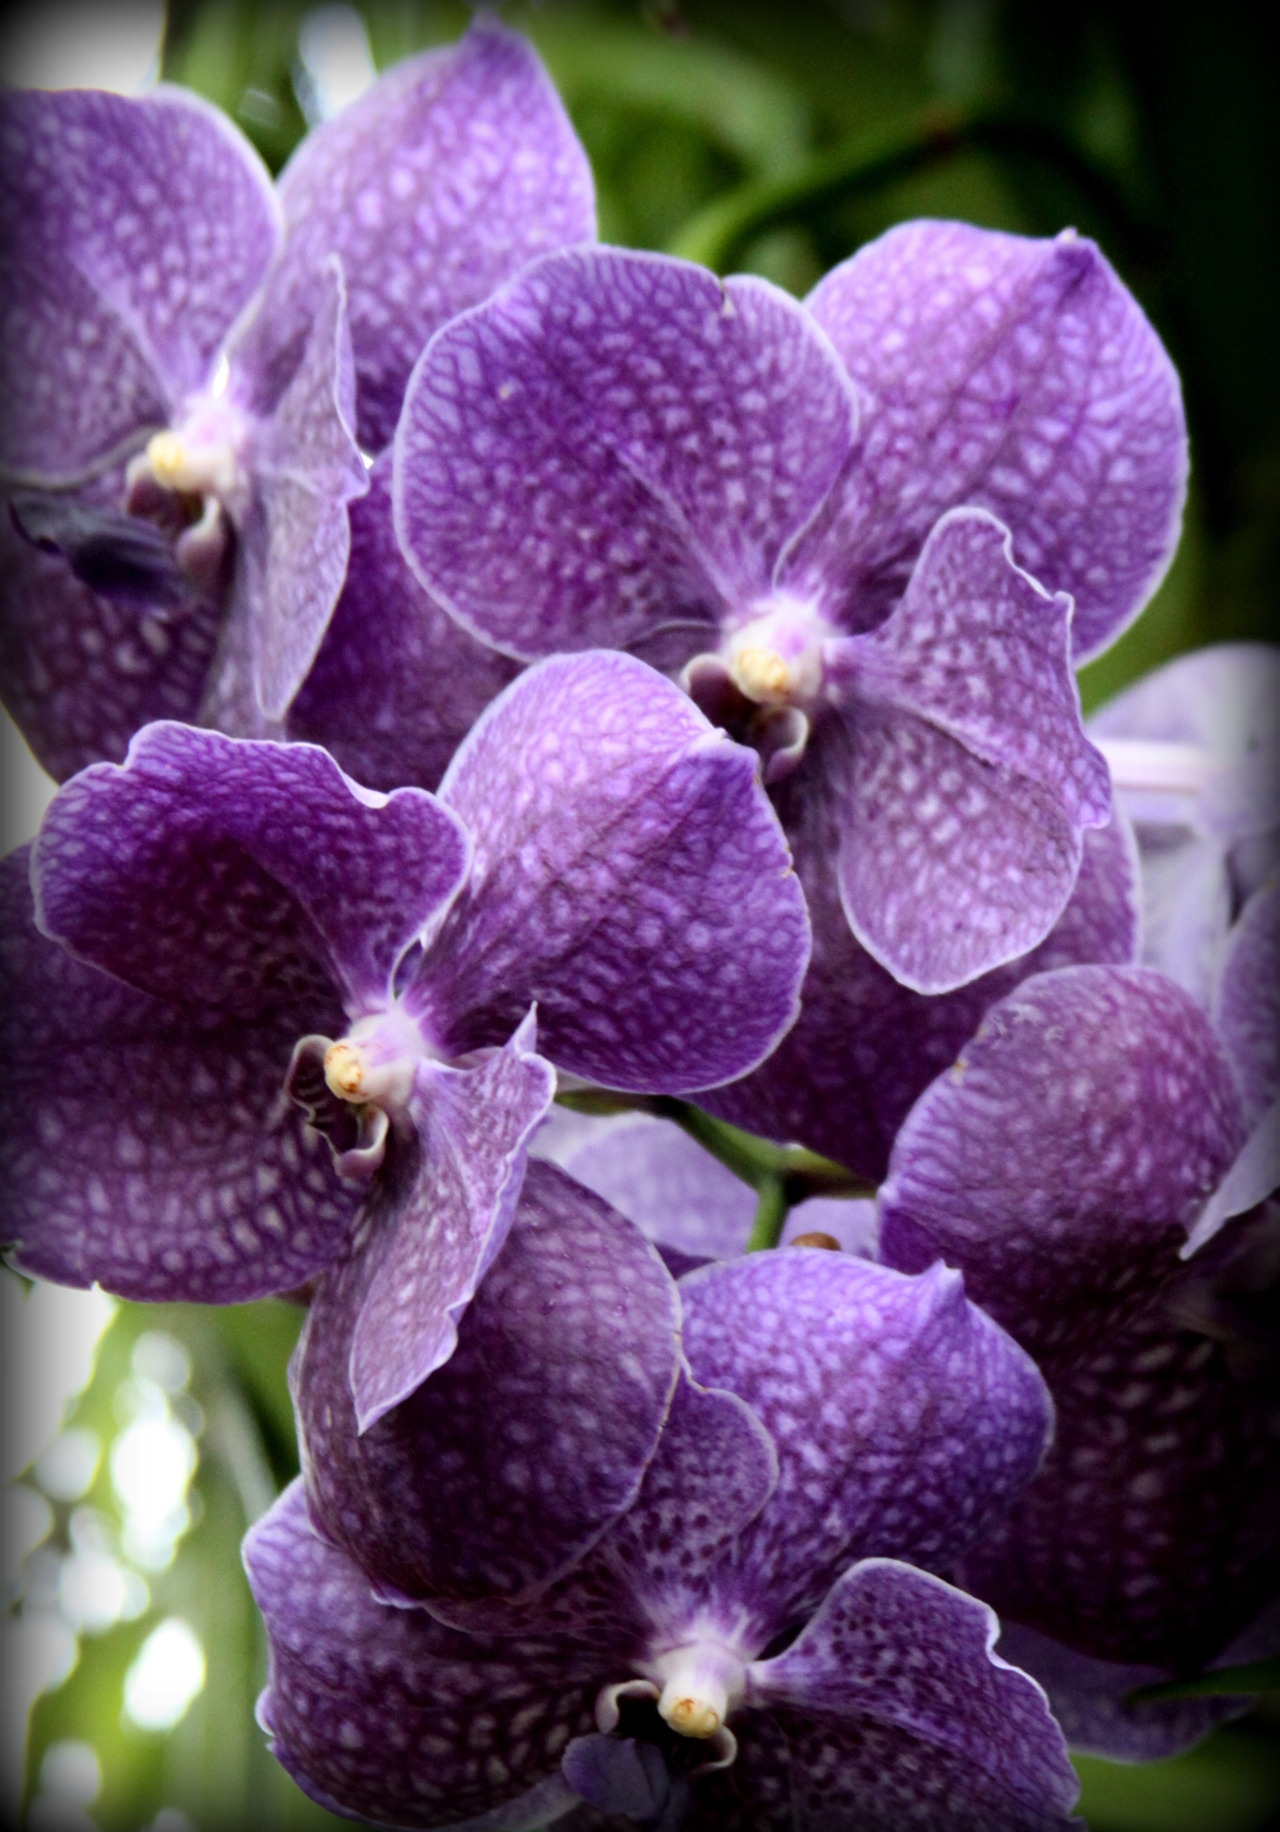 dianaisadoramarlene:  MYTH The Greek myth of Orchis explains the origin of the plants. Orchis, the son of a nymph and a satyr, came upon a festival of Dionysios (Bacchus) in the forest. He drank too much, and attempted to rape a priestess of Dionysios. For his insult, he was torn apart by the Bacchanalians. His father prayed for him to be restored, but the gods instead changed him into a flower. Source. Photo: Charlotte York   Well, glad we got that cleared up! There are so many great myths involved in the origin of plants, which is your favorite? ~AR